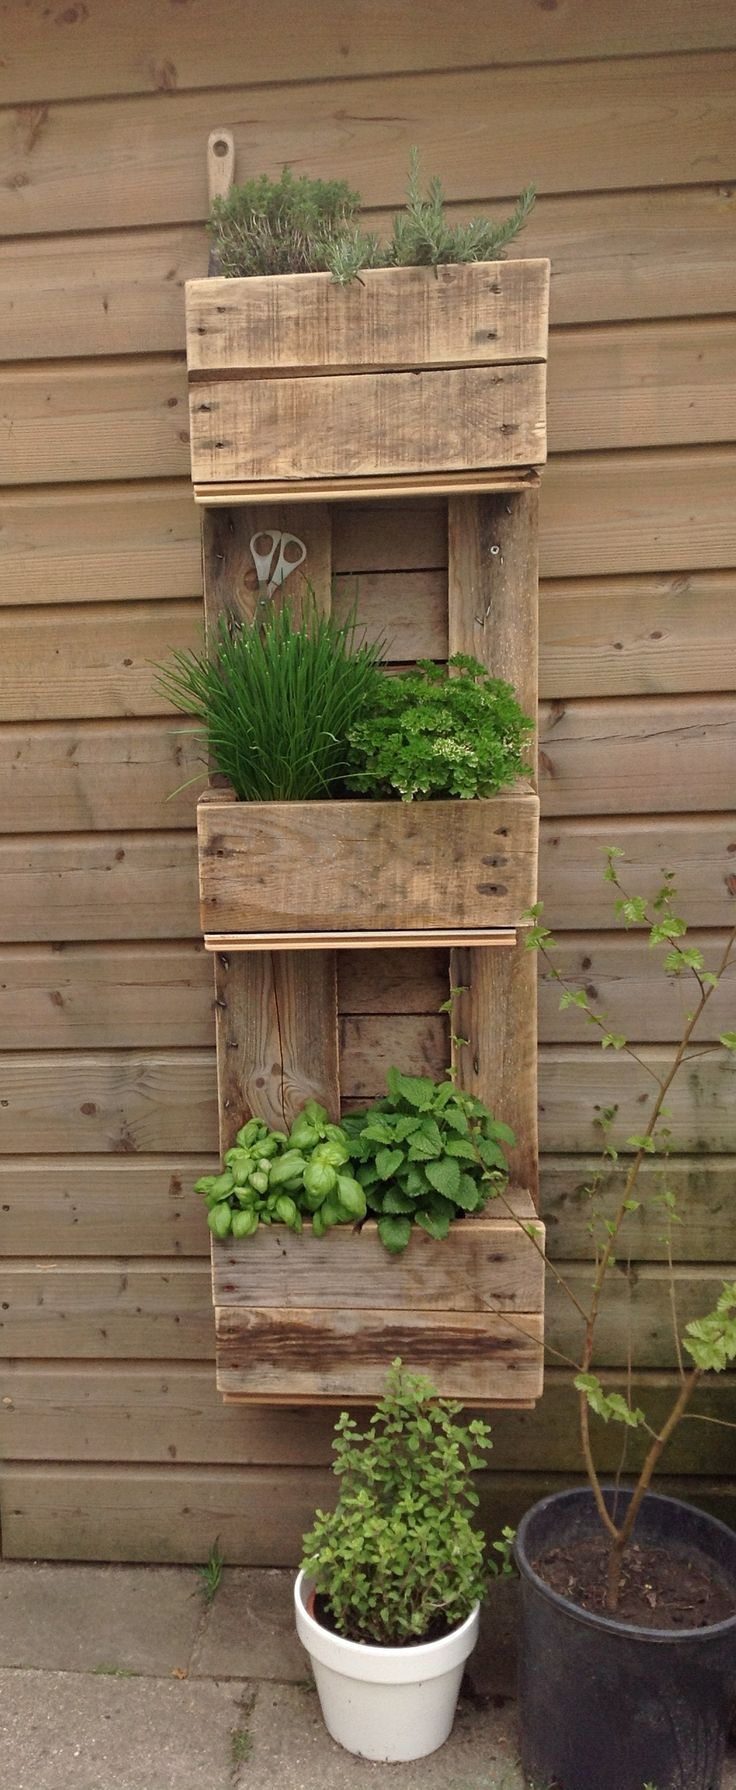 Build a vegetable garden box - Best 25 Box Garden Ideas On Pinterest Vegetable Garden Box Garden Beds And Vegetable Planter Boxes